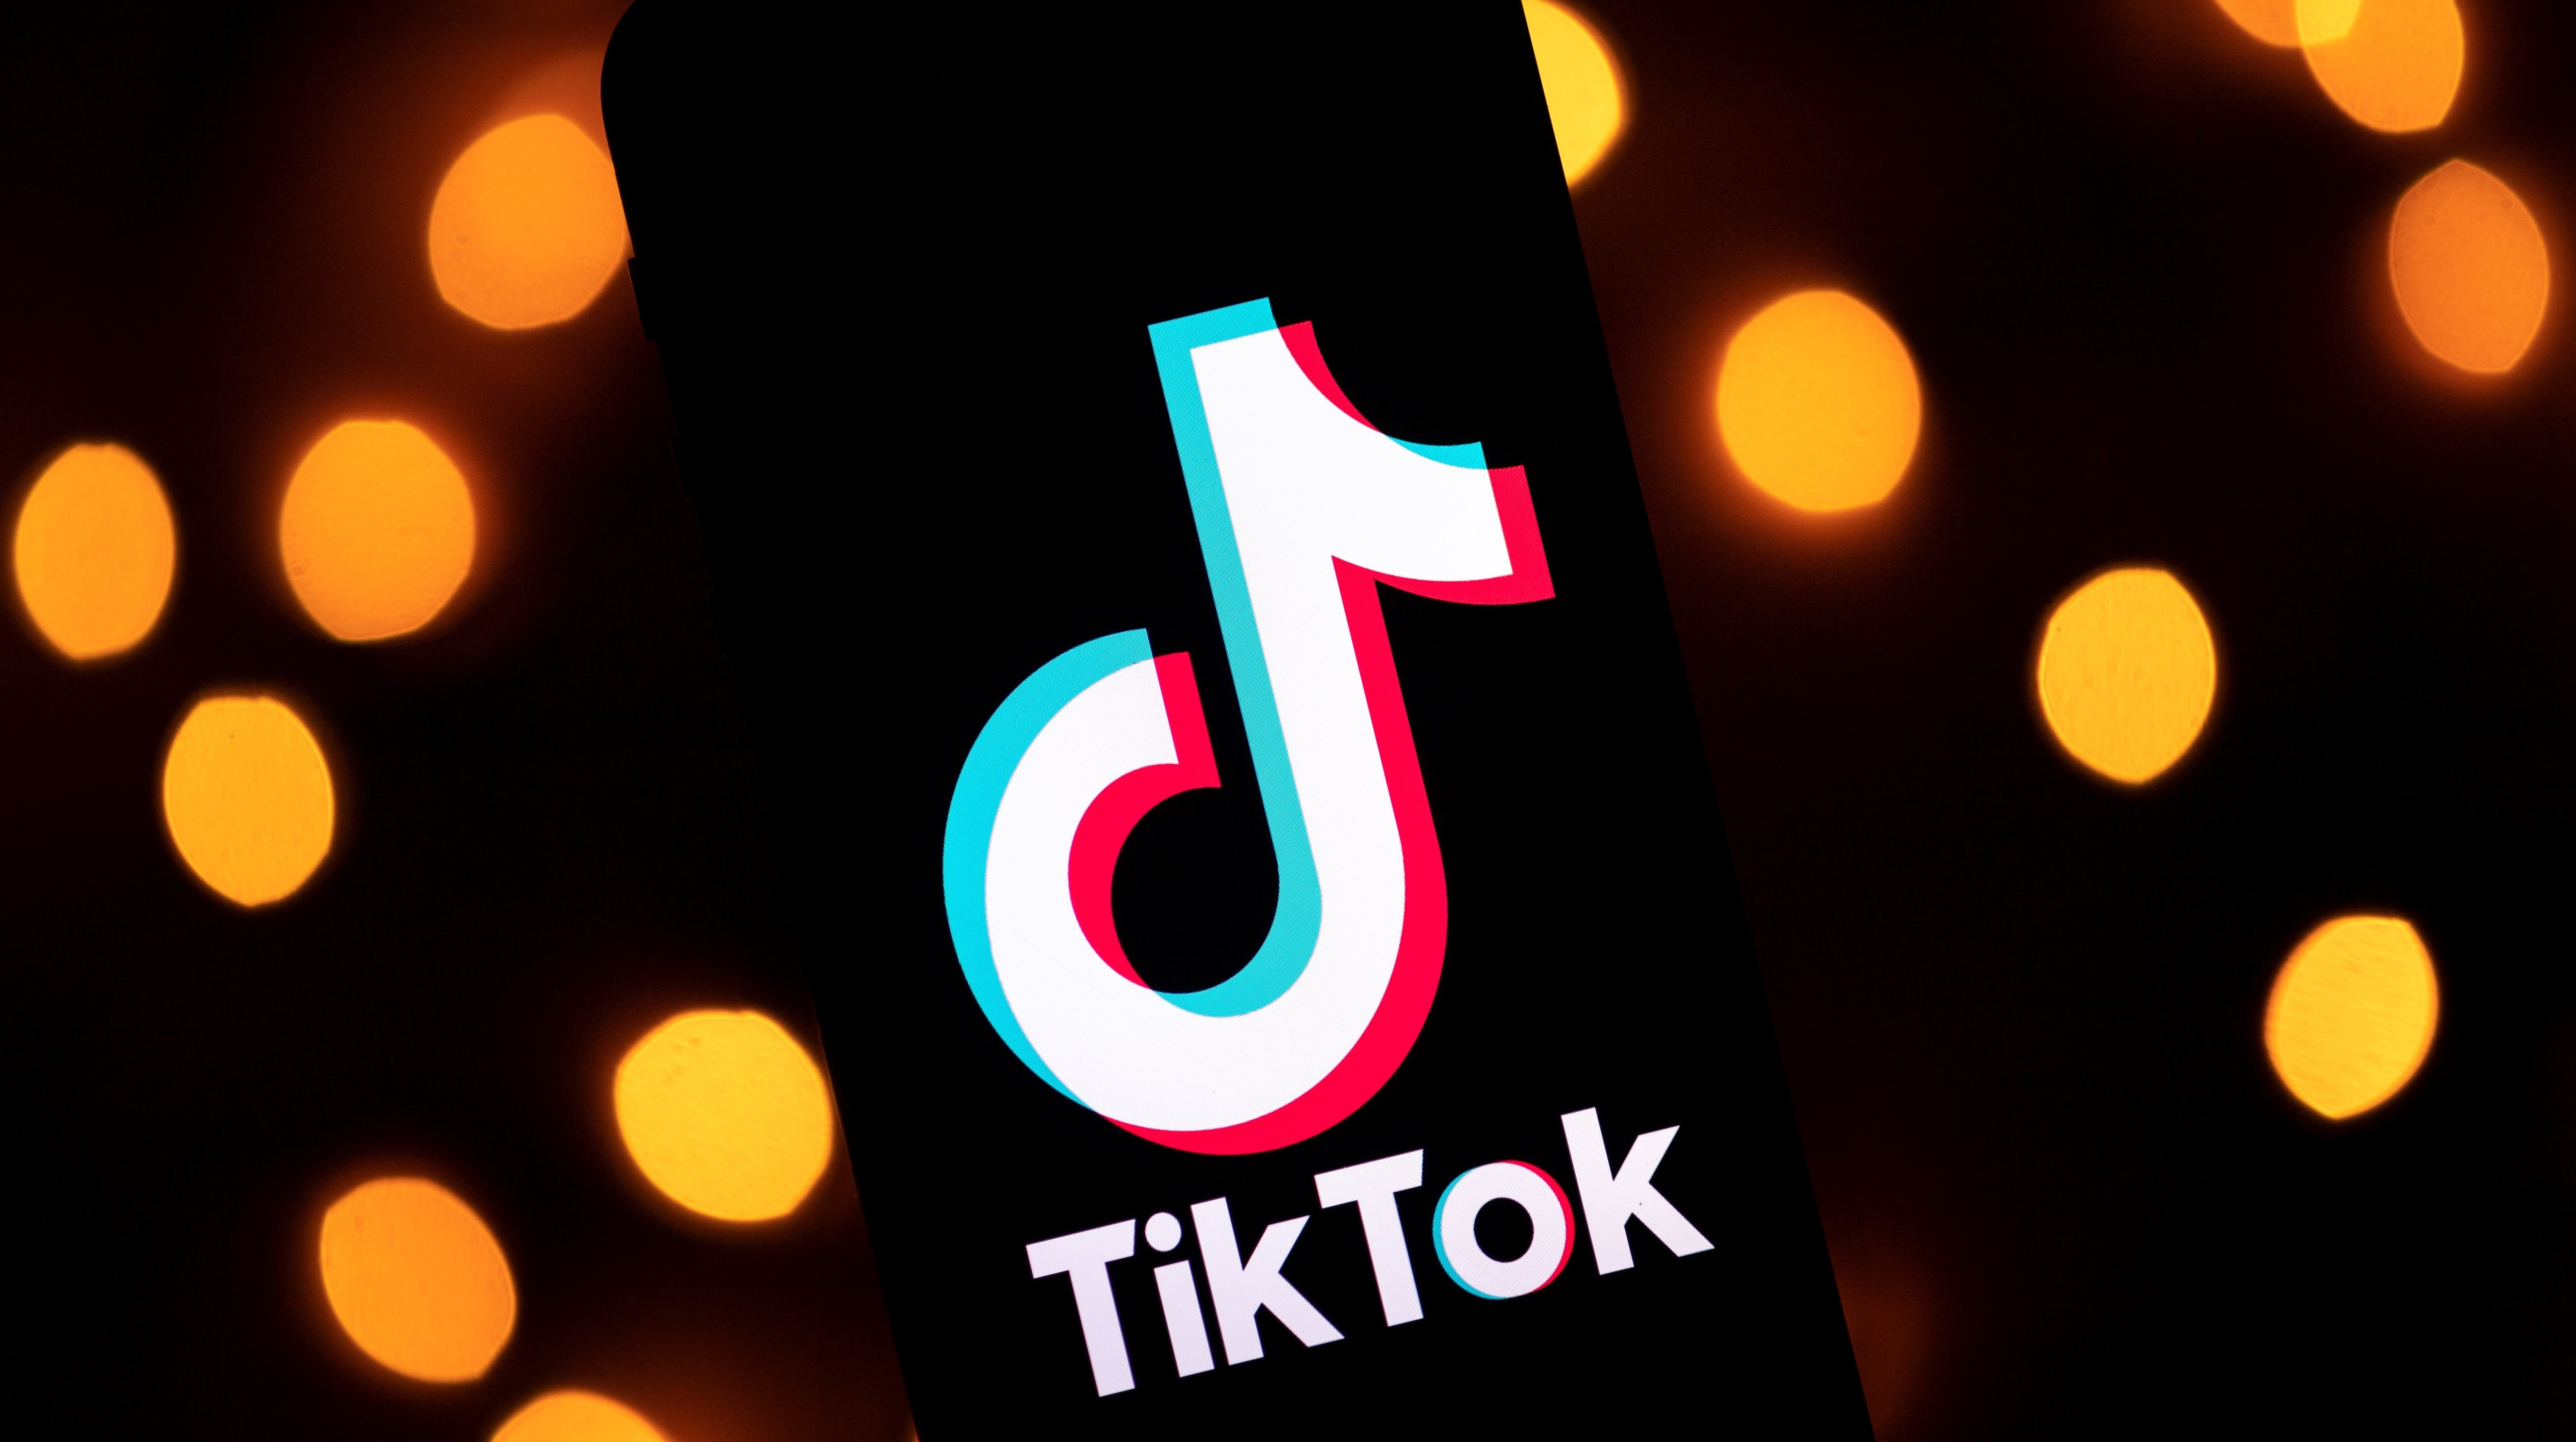 TikTok To Pay $2 Million To Settle Lawsuit Alleging It Collected And Exposed Children's Data